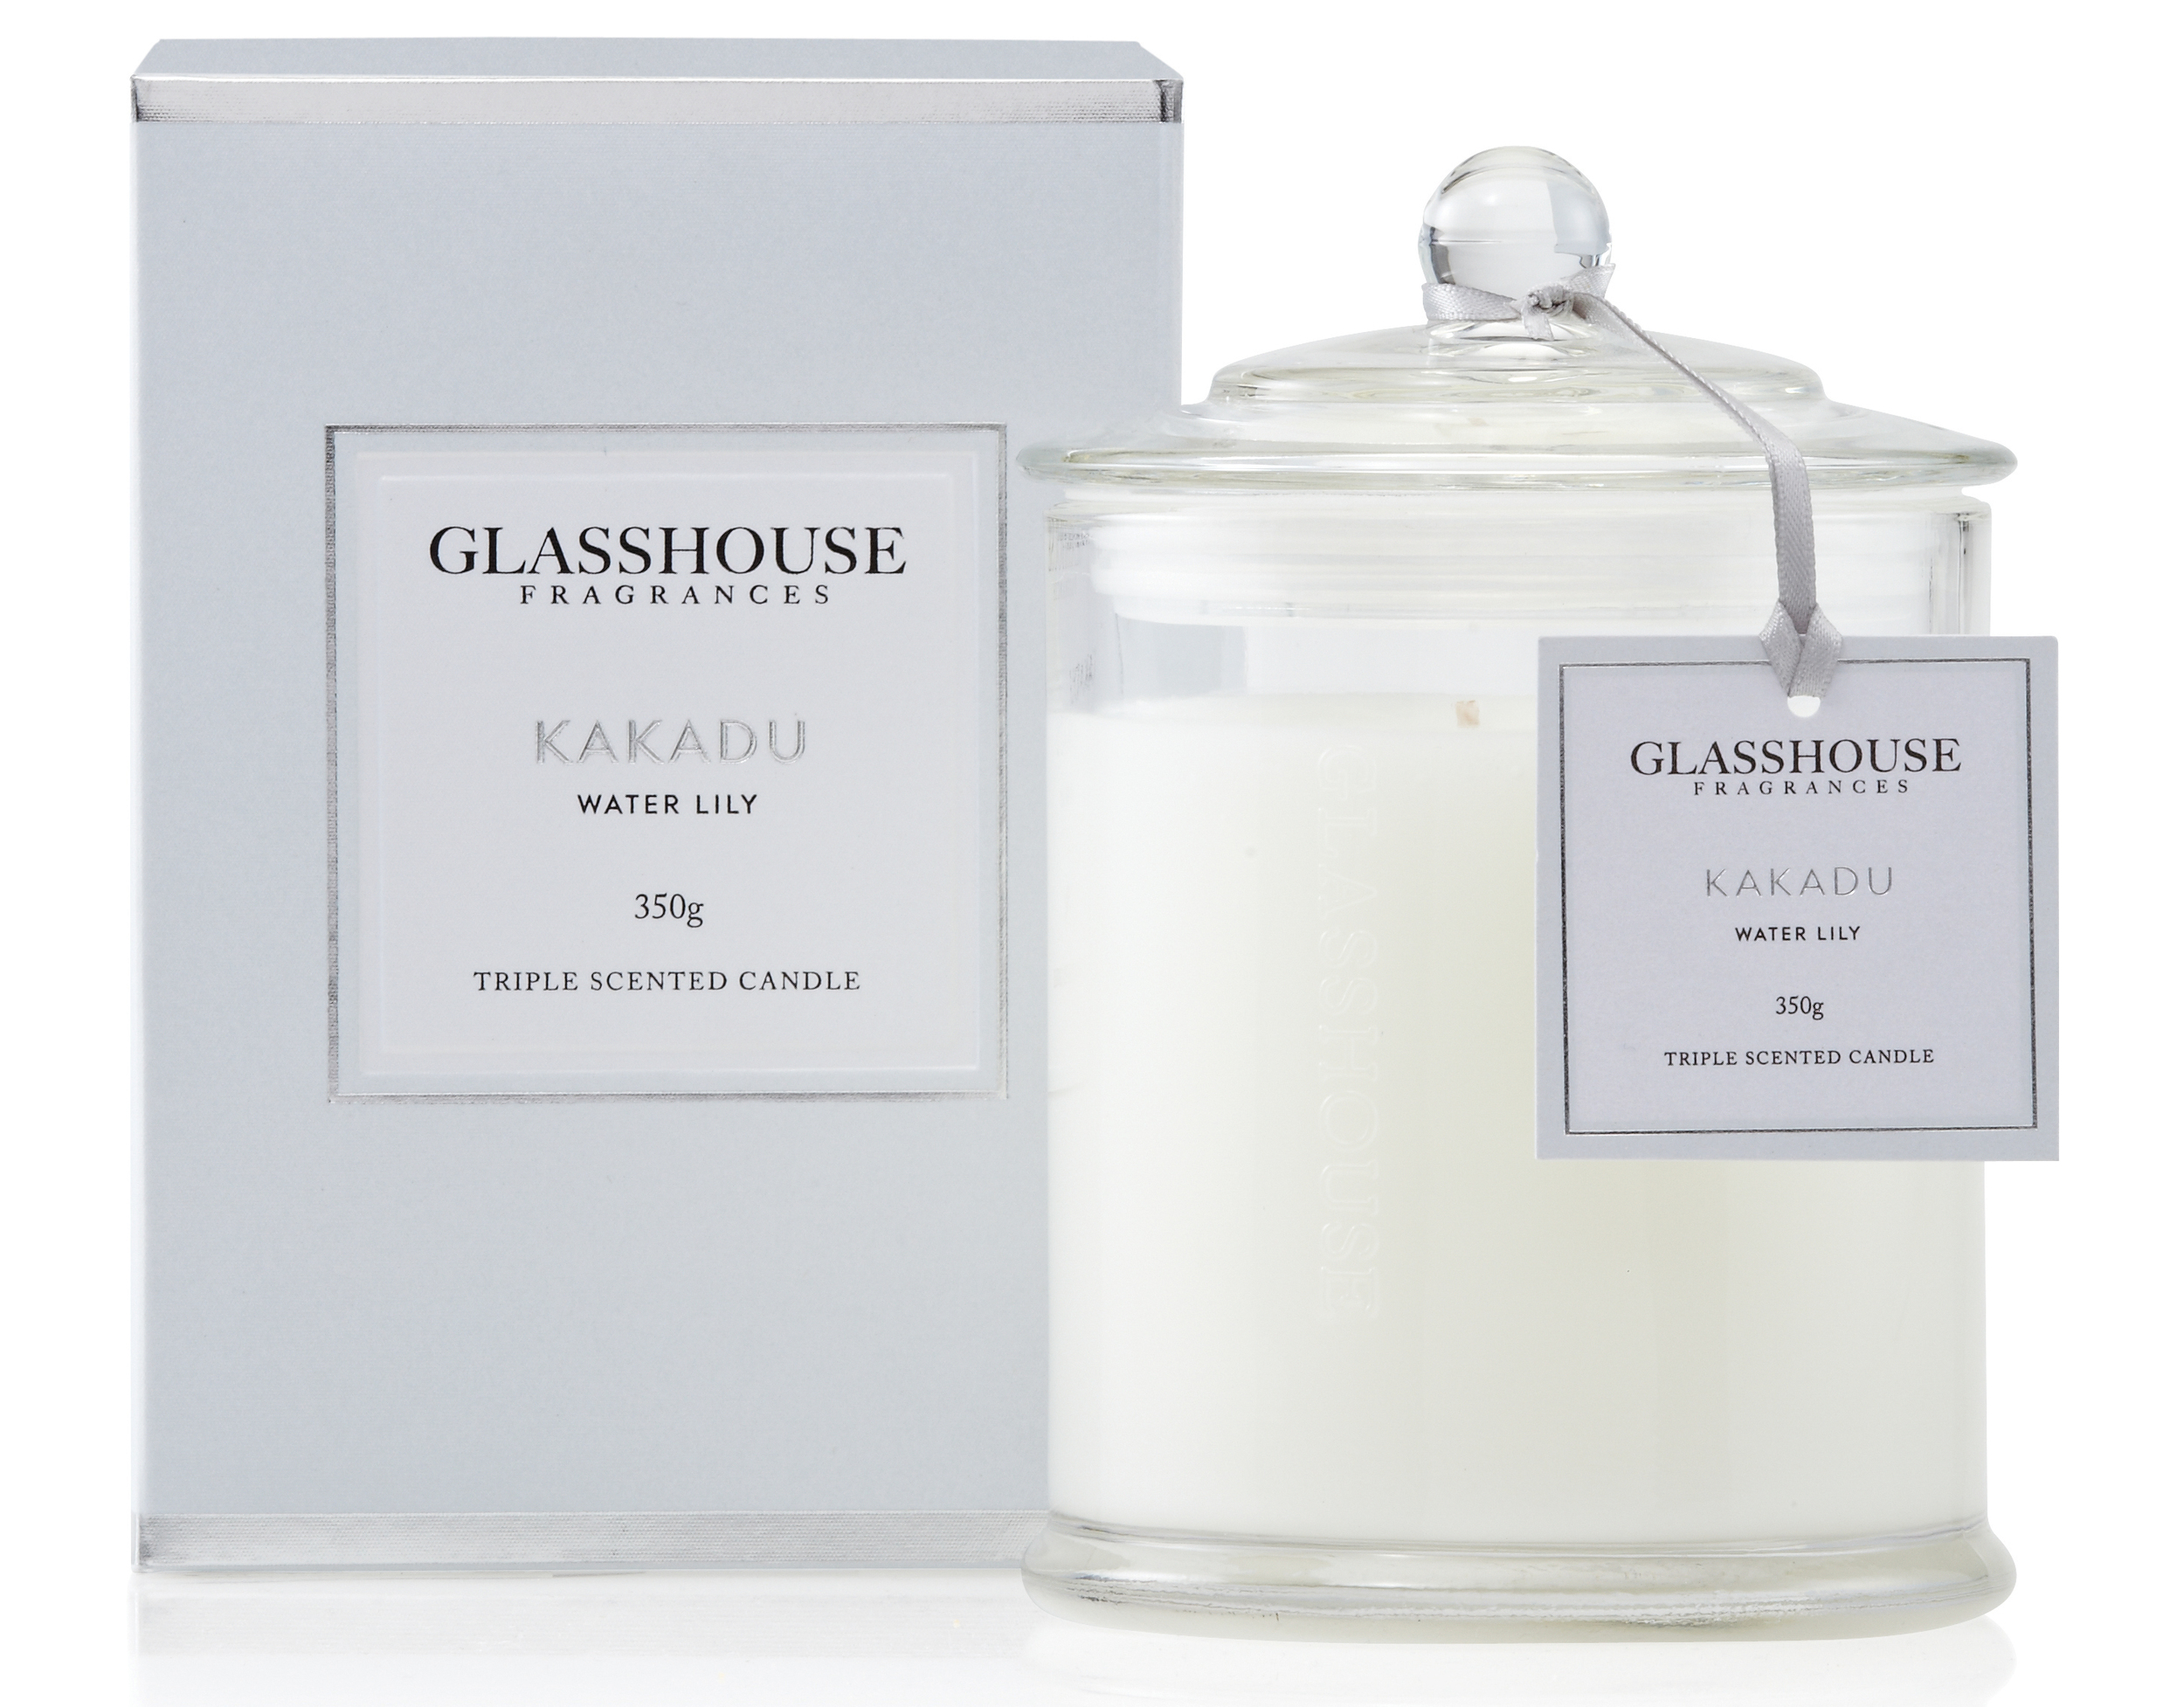 Glasshouse Fragrances Amalfi Coast Candle, $53.